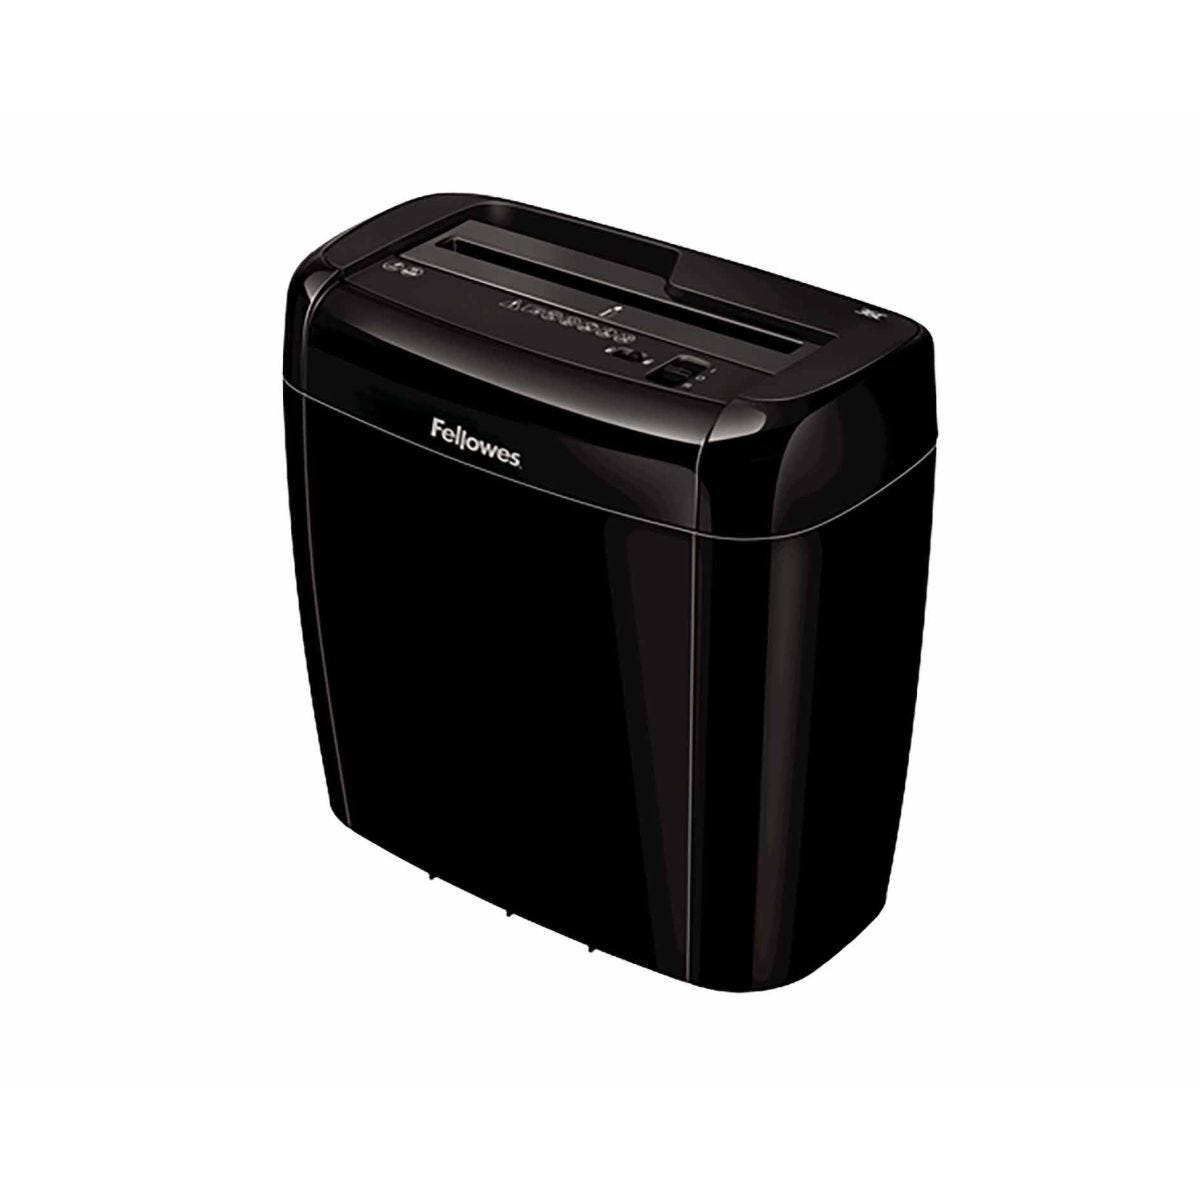 Fellowes Powershred 36C 6 Sheet Cross Cut Shredder